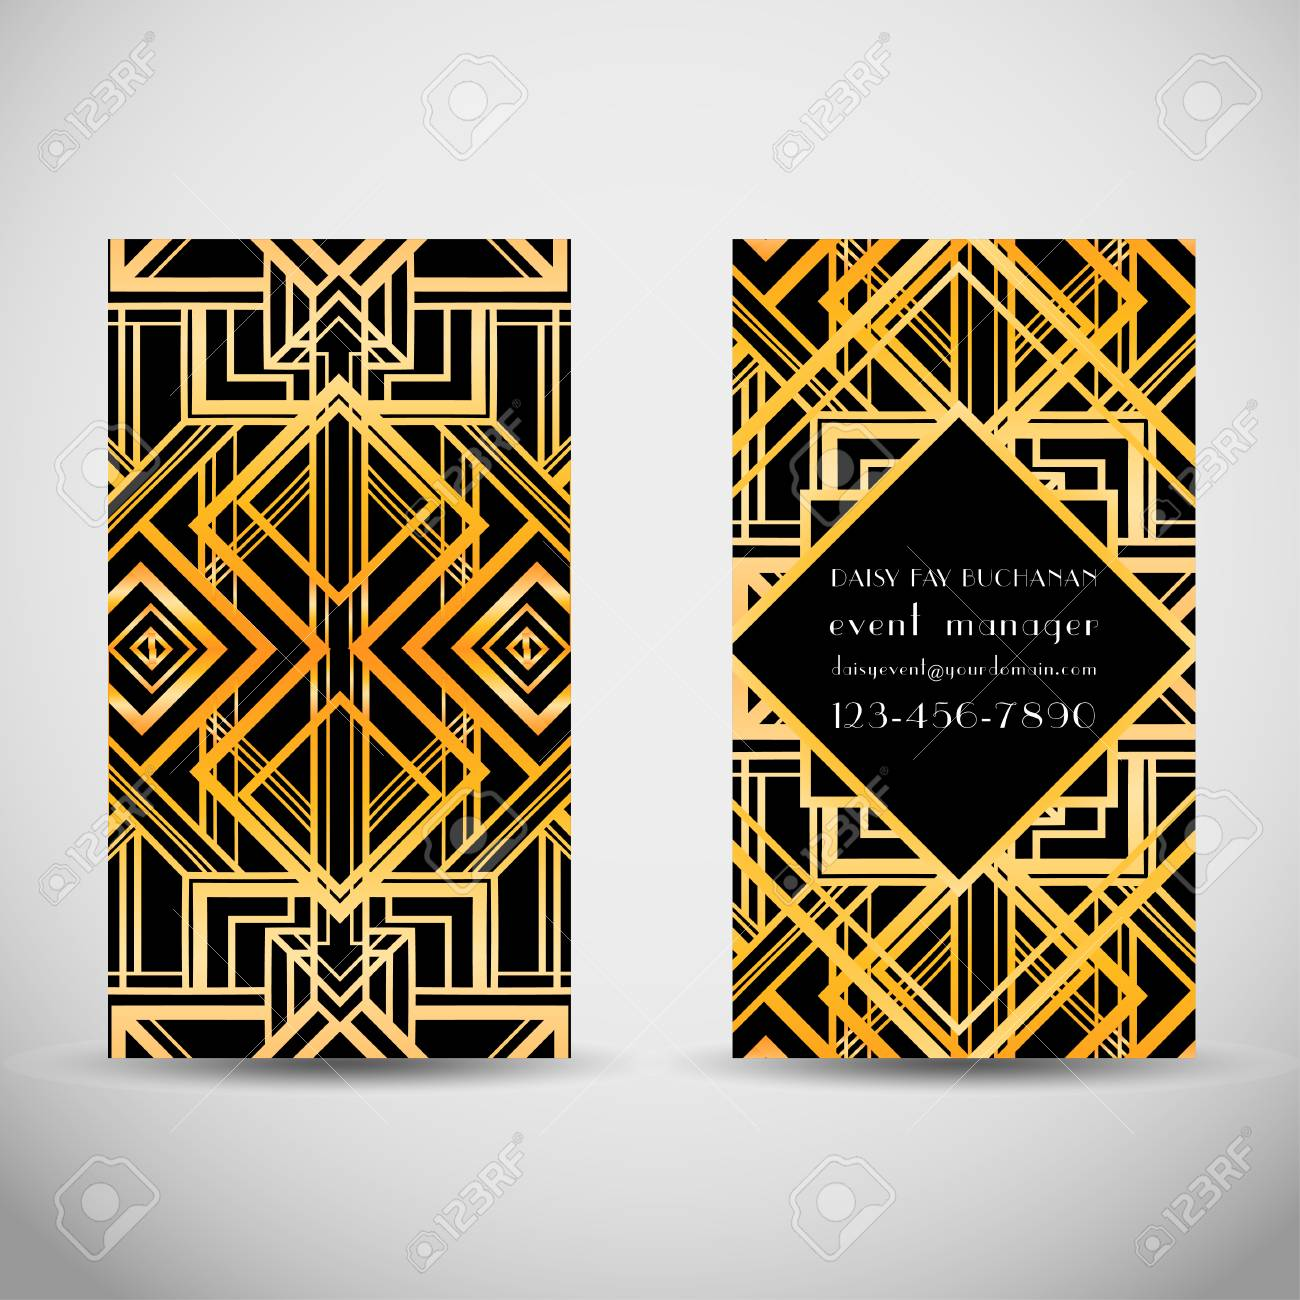 Art Deco Style Business Card Template. Abstract Vintage Patterns ...